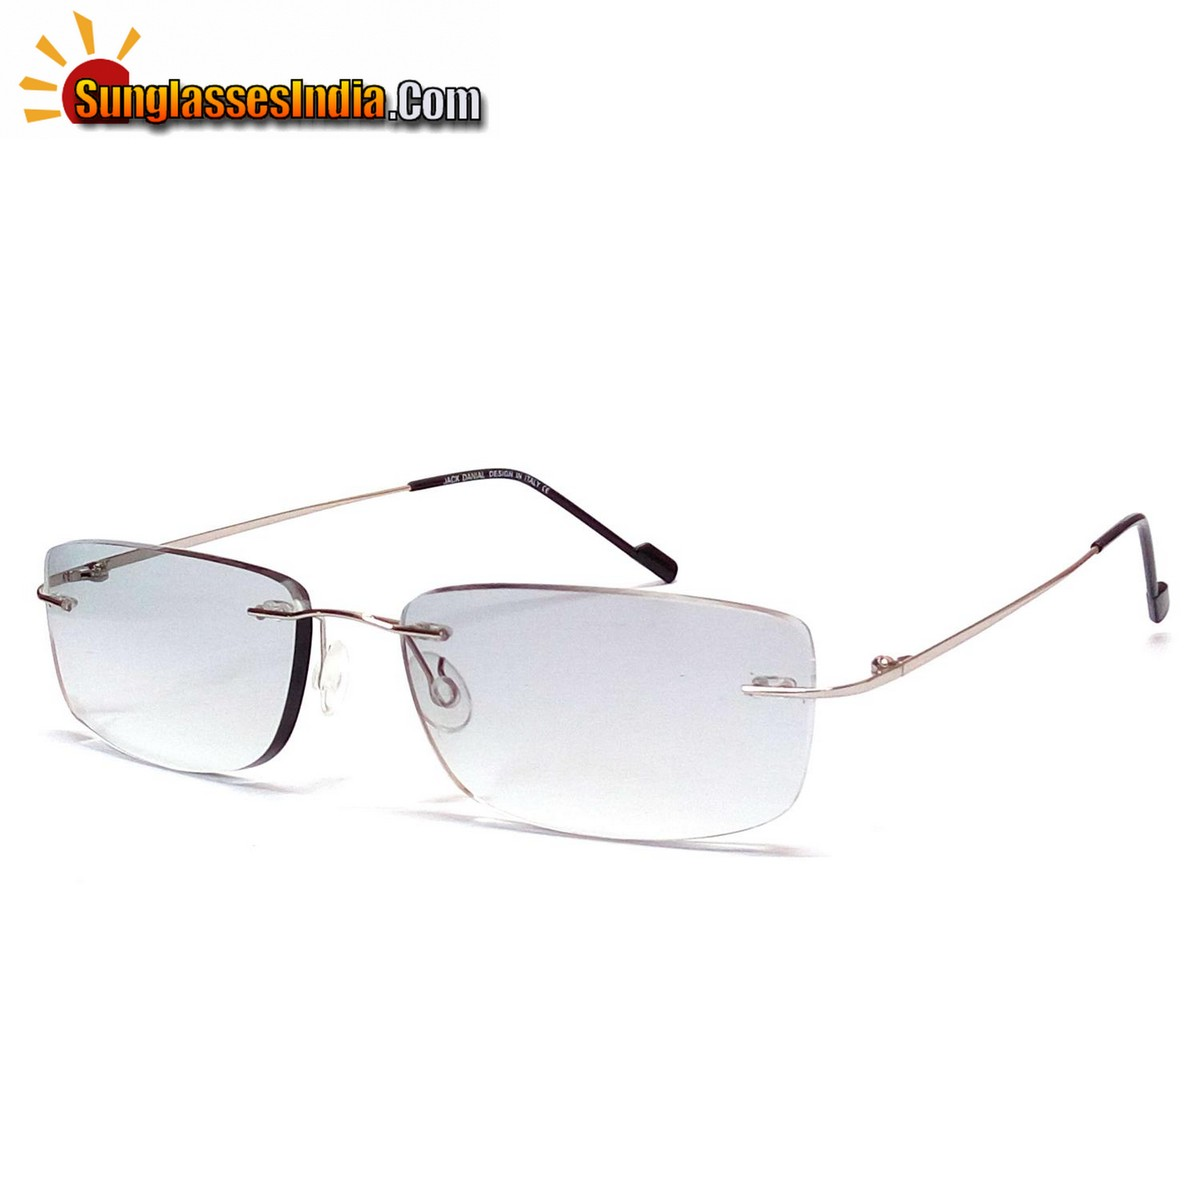 Grey Gradient Ultra Light Weight Rimless Sunglasses for Men and Women